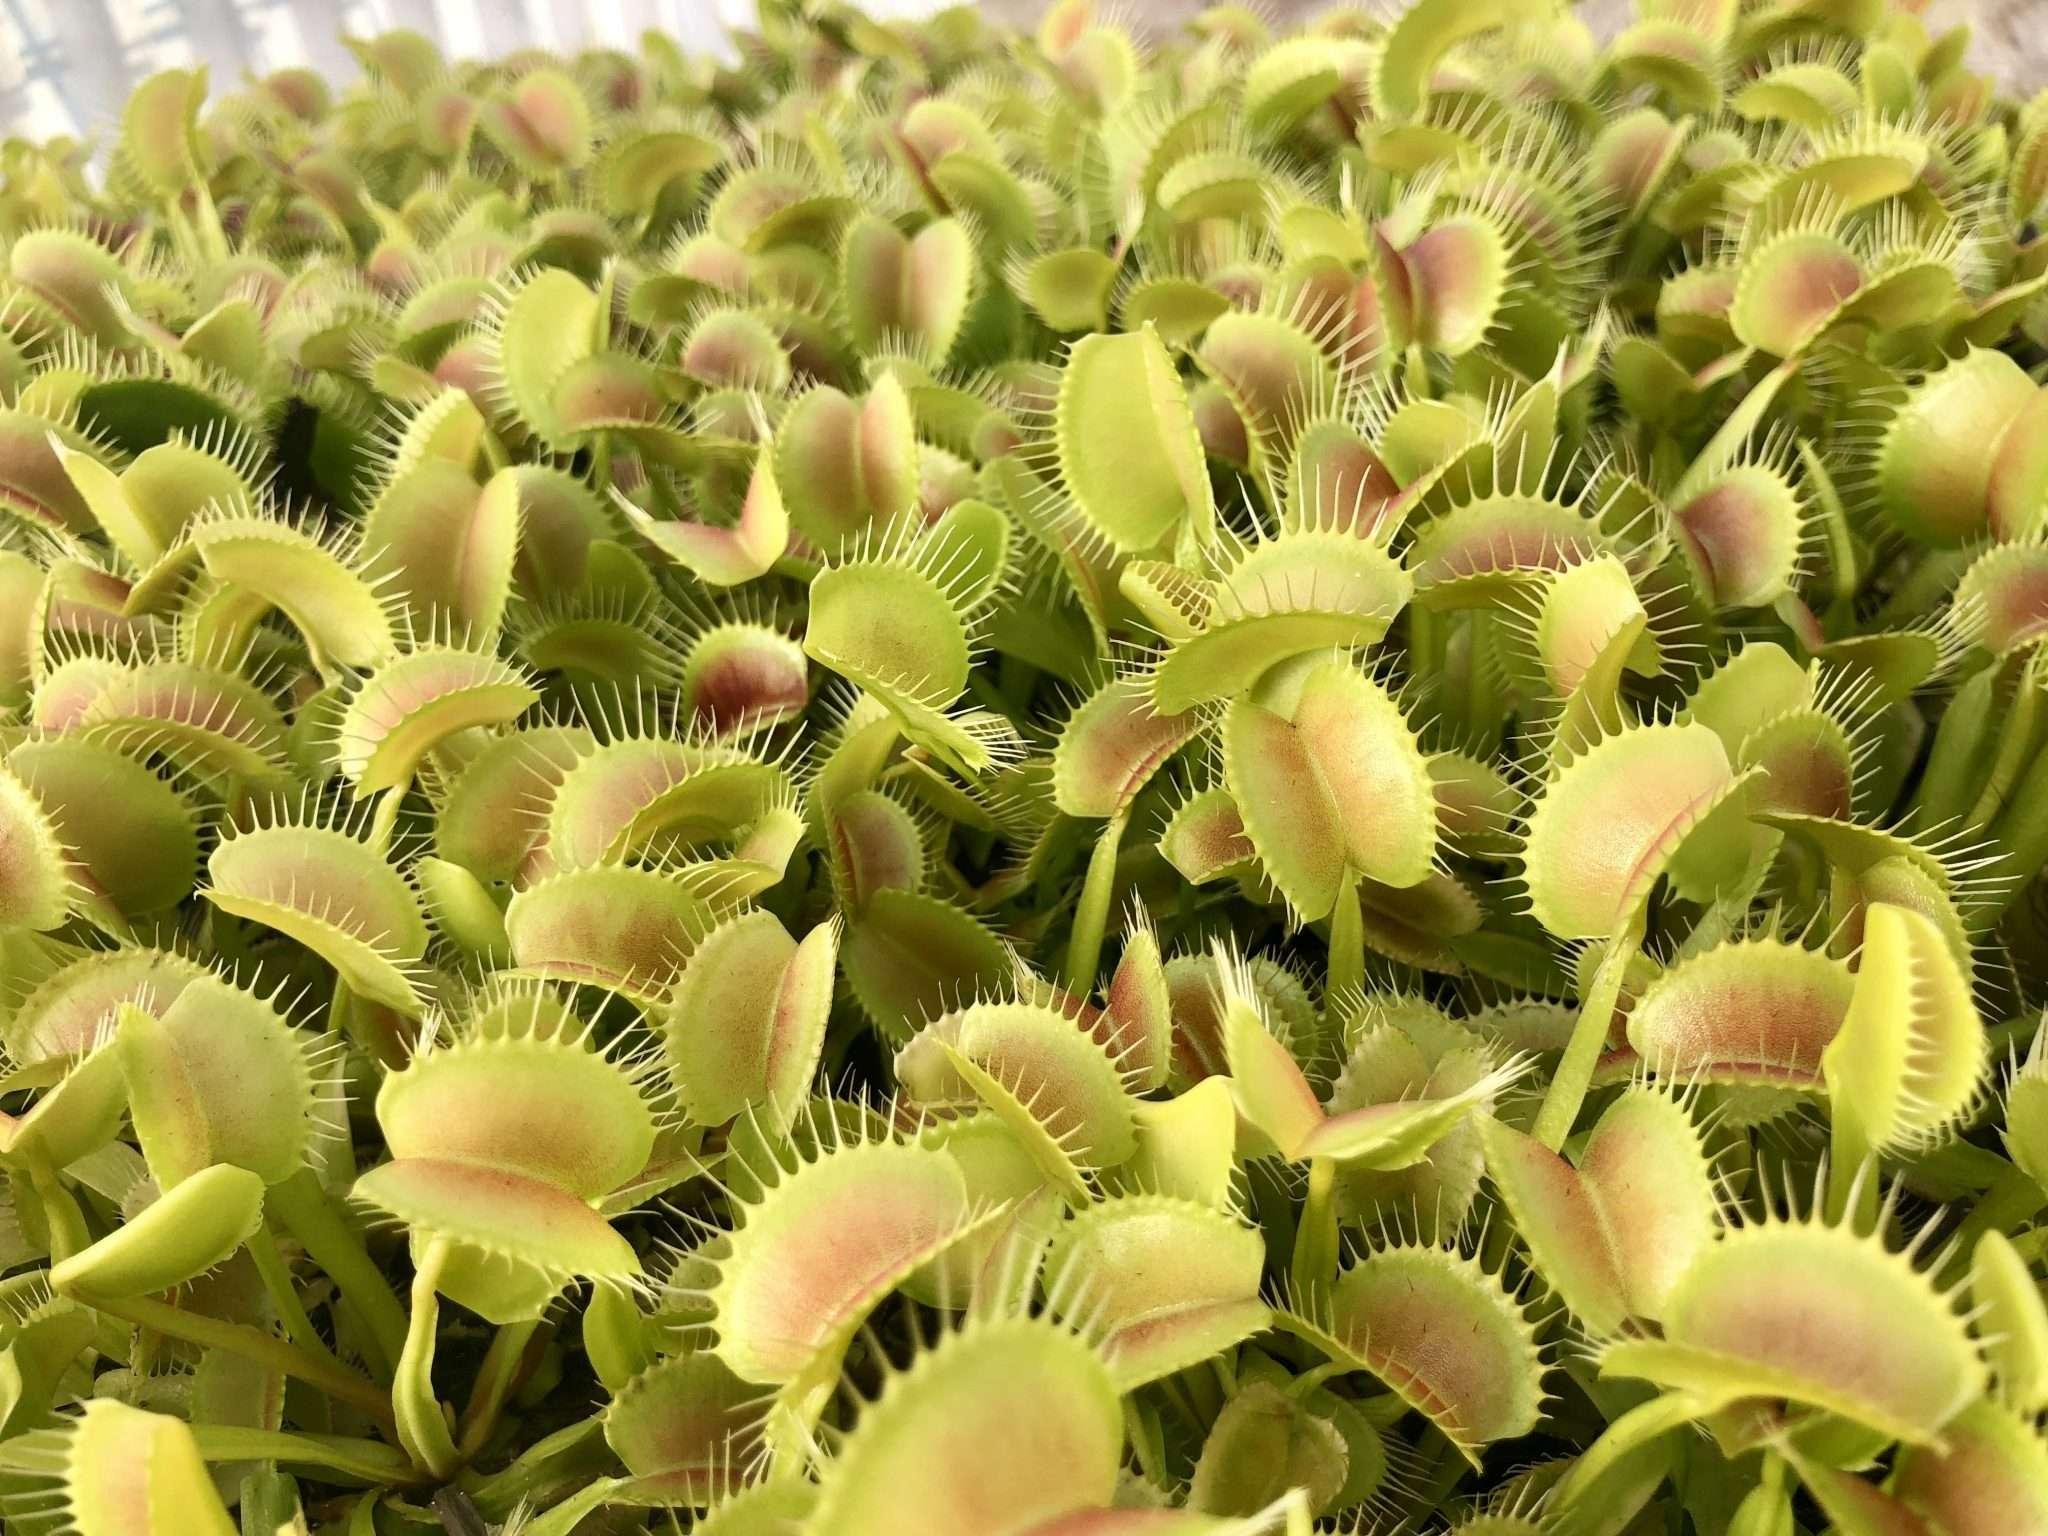 Venus flytraps for sale